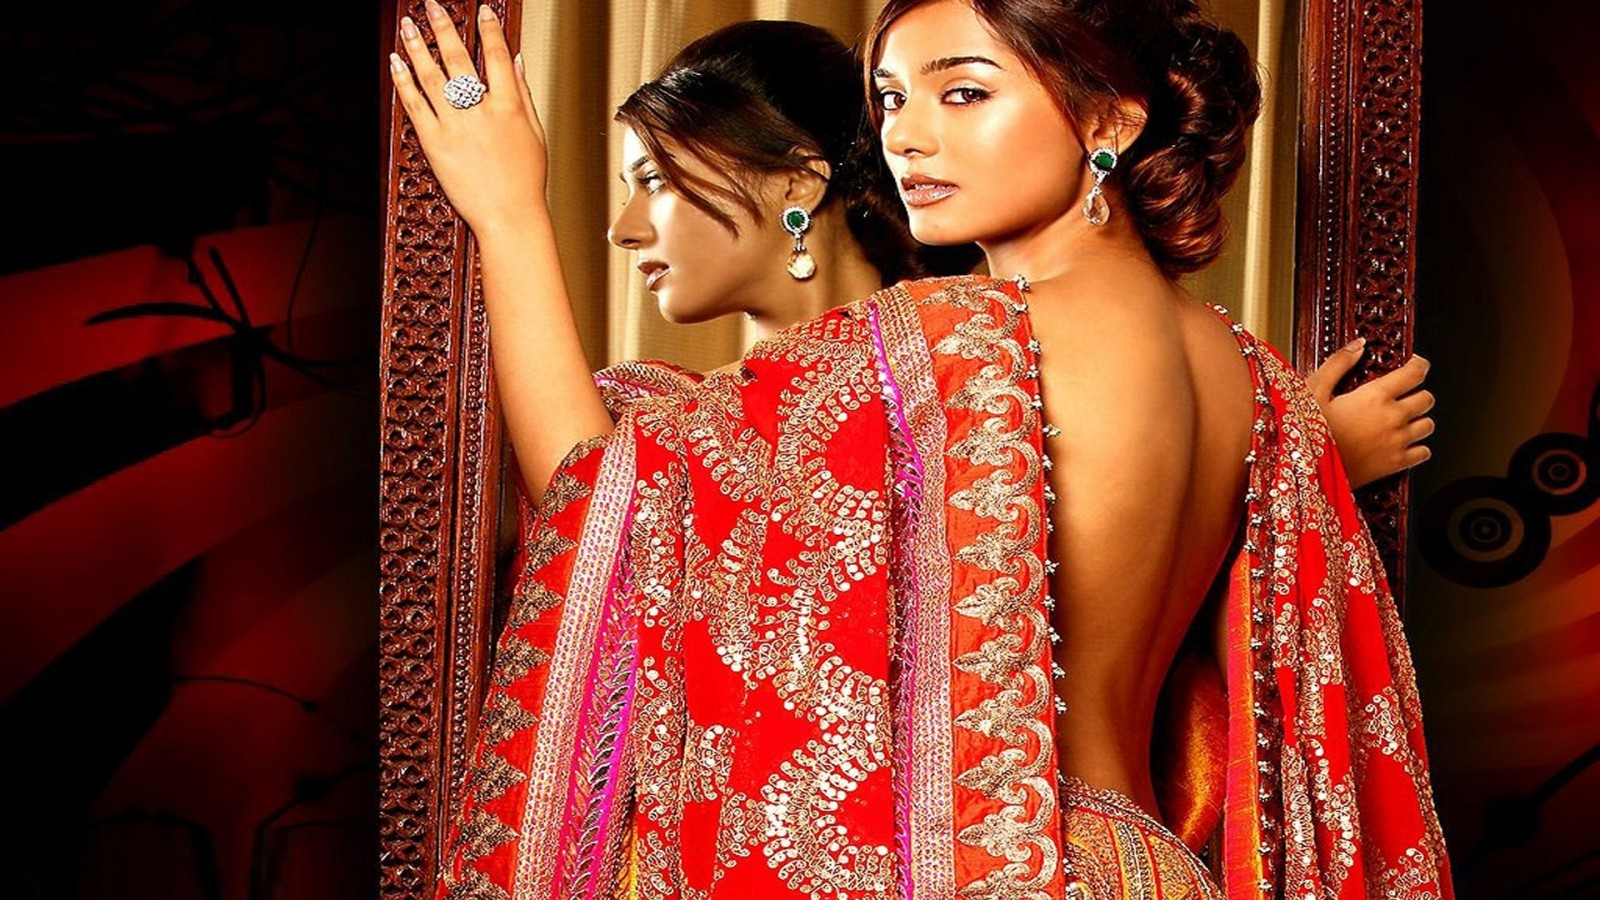 Amrita Rao In Saree HD Wallpapers, Download wallpapers, Wallpapers for free, Free wallpaper, Wallpapers hd free, Wallpapers hd, Mobile wallpapers, Free mobile wallpapers, Wallpapers hd, Wallpapers hd free, Free live wallpapers Live wallpapers, Wallpaper download, Download wallpapers, Free themes wallpapers for mobile, wallpapers for free, Free wallpaper, Hd wallpaper, Wallpapers, Download wallpaper, Wallpaper free, iphone wallpaper, desktop wallpaper, Windows wallpaper, Android wallpaper, hd wallpaper, iphone wallpaper, Live wallpaper, Love wallpaper, Black wallpaper, Hot wallpaper, Download wallpaper, Mobile wallpaper, New wallpaper, Hot and Sexy girls wallpaper,free download hot and sexy girls wallpapers, Sexy Bikini Girls Wallpaper, Free download Bikini wallpapers, Sexy Girl Desktop Wallpaper, sexy girl wallpaper, Hot sexy girl wallpaper for Desktop, Mobile and android phone, Babe Wallpaper free download, Cute Girl Wallpaper, hot girl wallpapers, girl wallpapers, asian girls wallpaper, asian girls wallpapers, gothic sexy girls, asian wallpapers, sad wallpapers, eyes wallpaper, gothic wallpaper free, gothic girl wallpaper, wonder girl wallpaper, wonder girls wallpaper, wonder girls wallpapers, Sunny Lion Hot wallpaper,Bikini Girl bikini wallpaper full hd, Bikini Girl bikini wallpapers, Bikini Girl bikini wallpaper free download, Bikini Girl bikini wallpapers hd, Bikini Girl bikini wallpaper download, Bikini Girl bikini wallpaper 1920×1080, Bikini Girl bikini wallpapers for desktop, Bikini Girl bikini wallpaper hot, Bikini Girl bikini wallpaper hd, Bikini Girl bikini wallpaper, Bikini Girl bikini wallpaper for android, Bikini Girl bikini wallpaper for iphone, Bikini Girl Hot 2015, Bikini Girl hottest wallpapers hd, Bikini Girl hottest wallpaper collection,,Bikini Girl hottest wallpaper download, Bikini Girl hottest wallpaper hd, Bikini Girl hottest wallpaper ever, Bikini Girl hottest wallpaper, Bikini Girl hottest wallpaper free download, Bikini Girl hottest wallpaper for mobile, Bikini Girl hot wallpaper actress, Bikini Girl hot wallpaper android, Bikini Girl hot wallpaper asian, Bikini Girl hot wallpaper 1080, Bikini Girl hot wallpaper backgrounds, Bikini Girl hot wallpaper bikini, Bikini Girl cute wallpaper 2015, Bikini Girl cute wallpapers, Bikini Girl cute wallpapers tumblr, Bikini Girl cute wallpapers pinterest, Bikini Girl cute wallpapers for iphone, Bikini Girl cute wallpapers for ipad, Bikini Girl cute wallpaper quotes, Bikini Girl cute wallpapers hd, Bikini Girl cute wallpaper tumblr, Bikini Girl cute wallpaper pinterest, Bikini Girl cute wallpaper images, Bikini Girl cute wallpaper desktop, Bikini Girl cute wallpaper girl, Bikini Girl cute wallpaper hd, Bikini Girl cute wallpaper hq, Bikini Girl cute wallpaper iphone, Bikini Girl hot girl wallpaper 2015, Bikini Girl hot girl wallpapers, Bikini Girl hot girl wallpaper 1920×1080, Bikini Girl hot girl wallpaper iphone, Bikini Girl hot girl wallpaper for phone, Bikini Girl hot girl wallpaper 1080p, Bikini Girl hot girl wallpapers for mac, Bikini Girl hot girl wallpaper images, Bikini Girl hot girl wallpaper download, Bikini Girl hot girl wallpaper for android, Bikini Girl hot girl wallpaper hd, Bikini Girl hot girl wallpaper android.